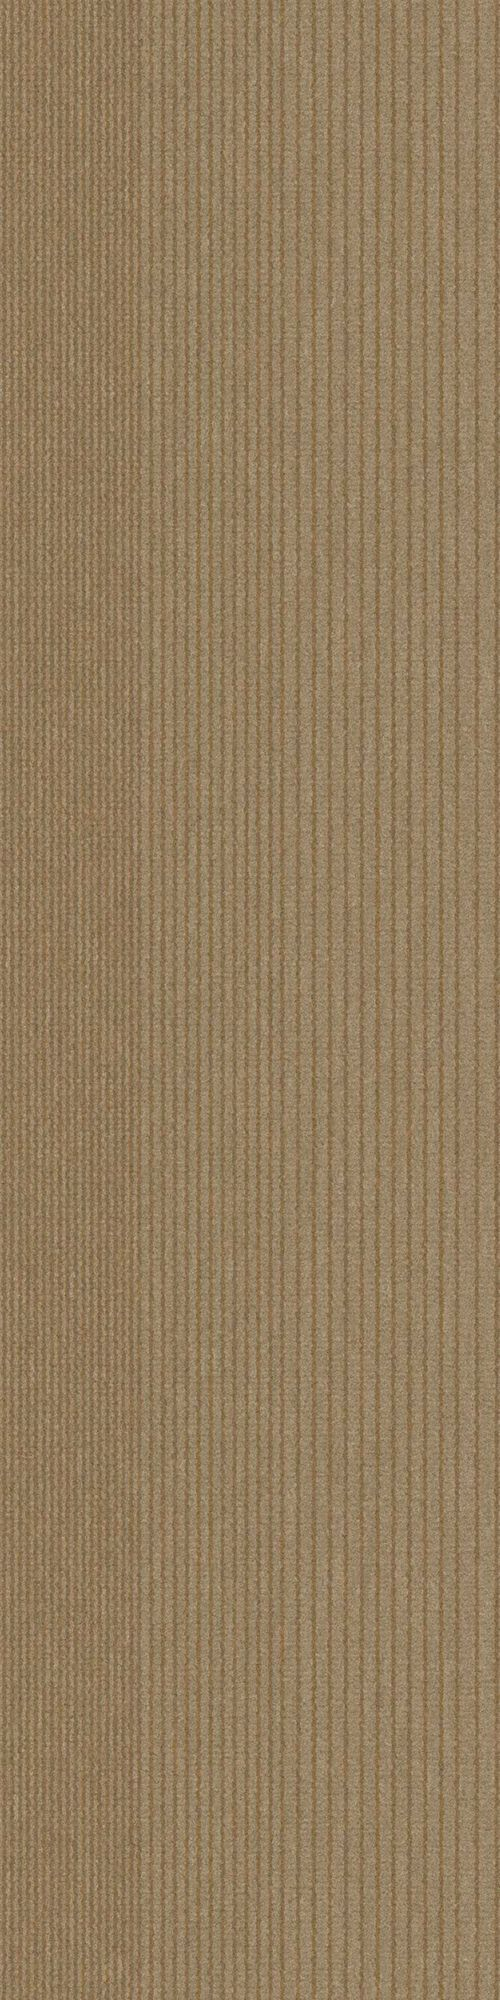 Interface carpet tile: B703 Color name: Sand Variant 6